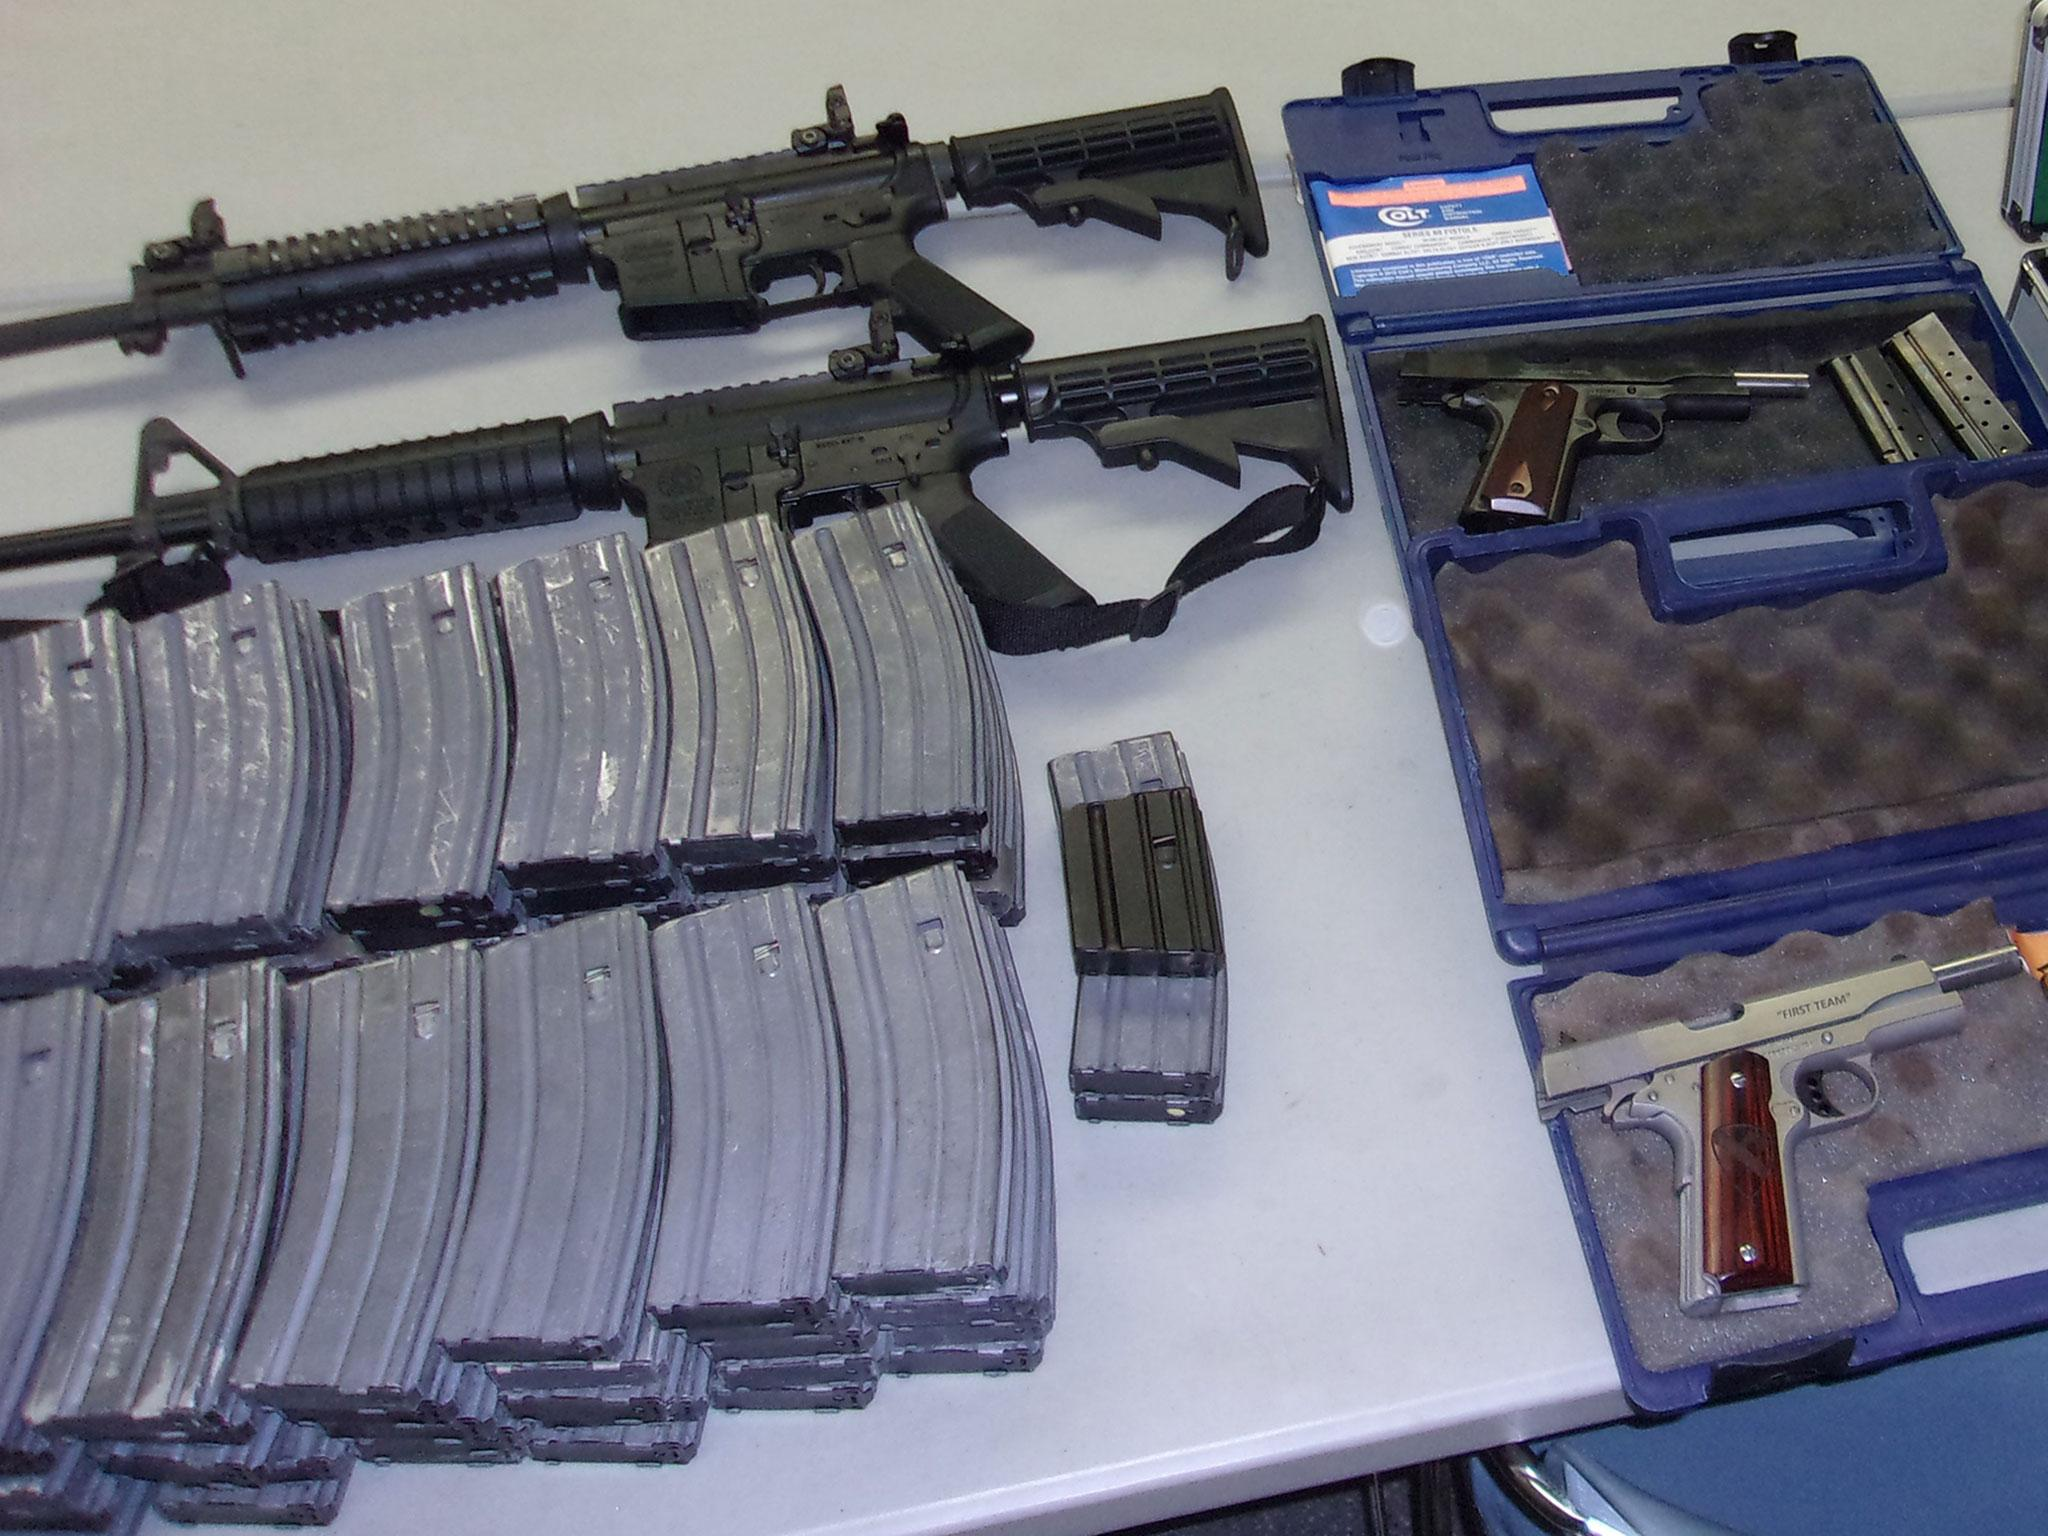 California student arrested with two assault rifles and 90 magazines after security guard overhears shooting threat